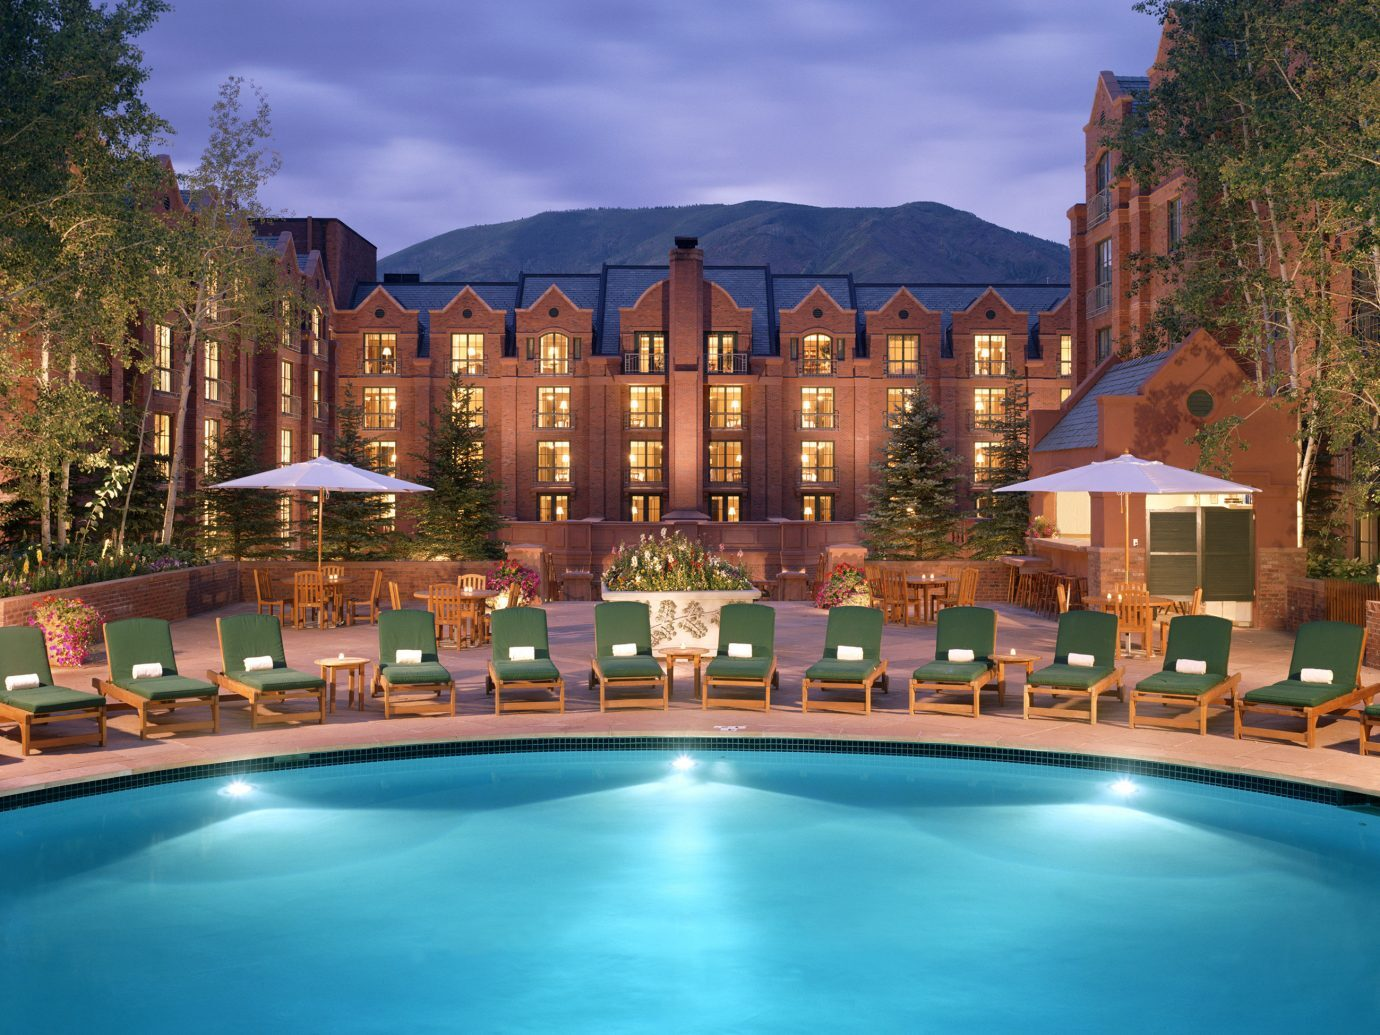 Pool at The St. Regis Aspen Resort